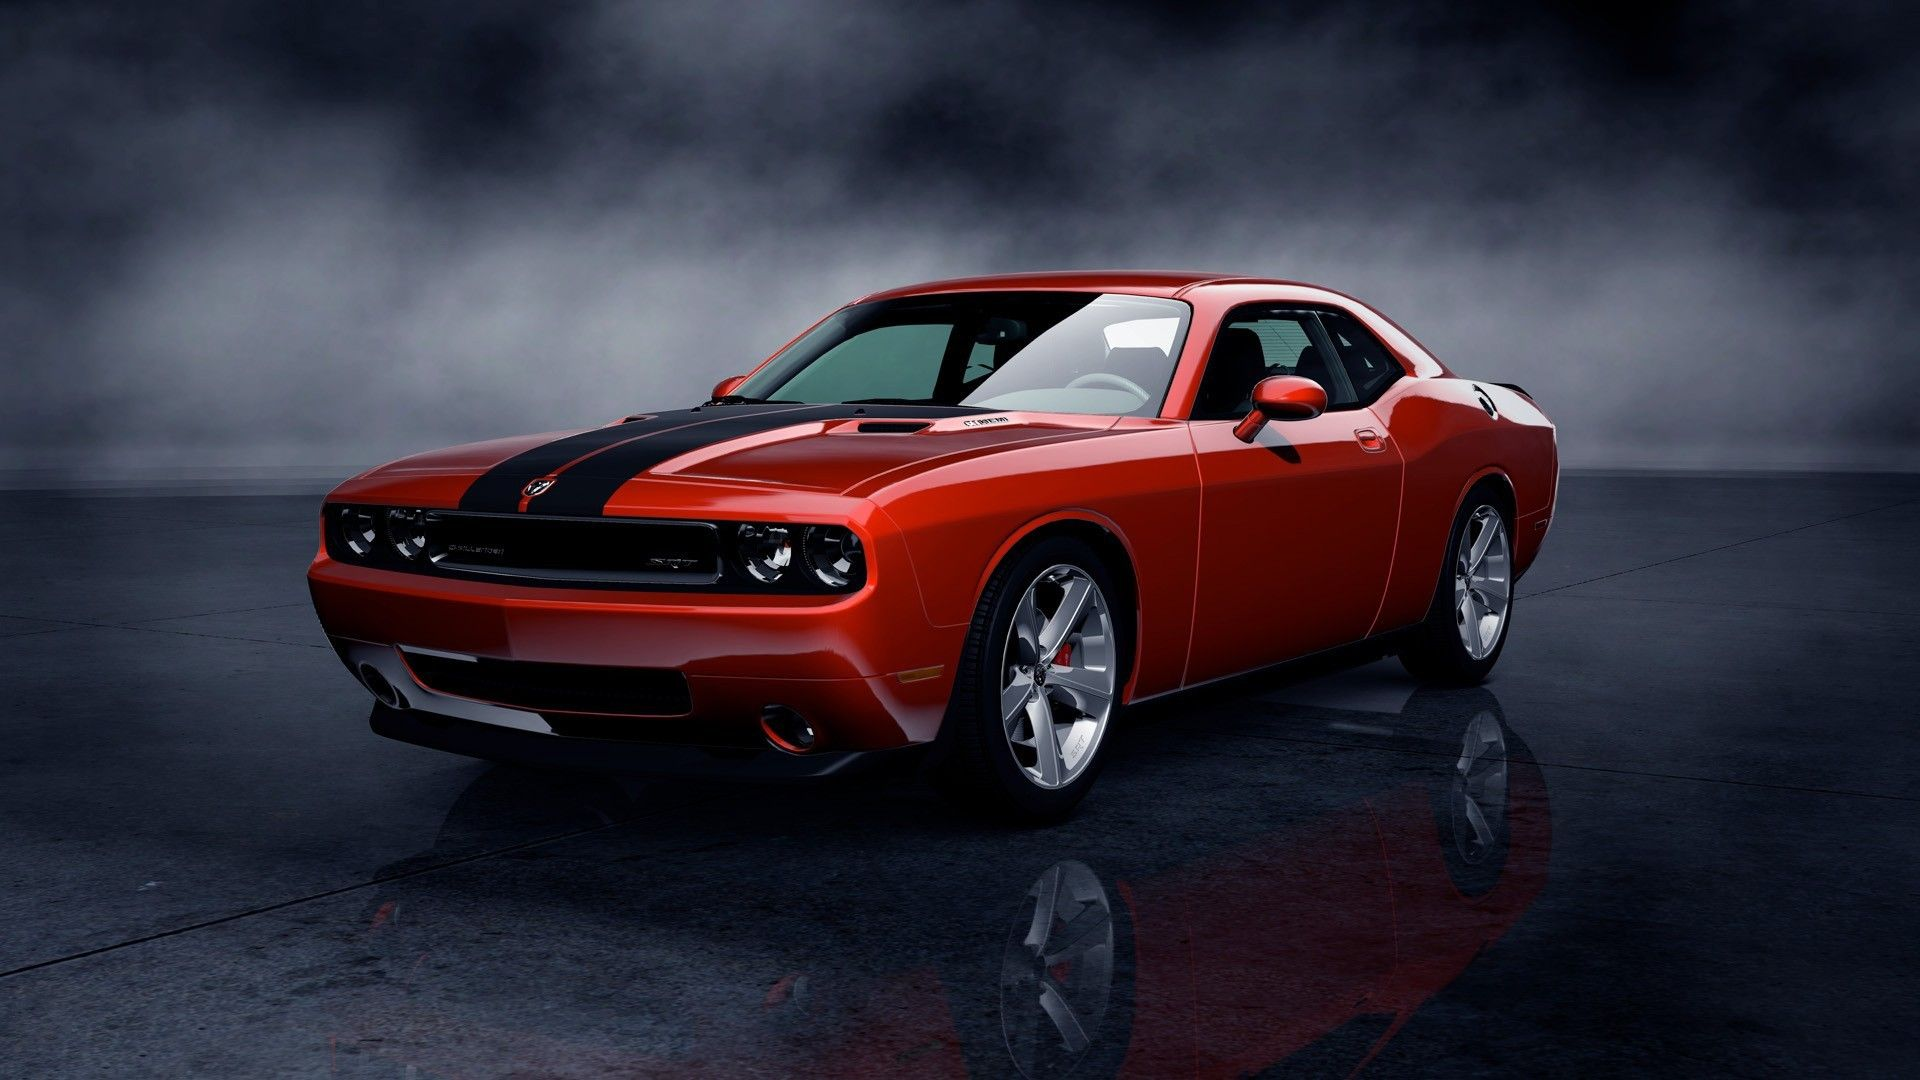 Res 1920x1080, wallpaper Dodge challenger, Challenger srt8